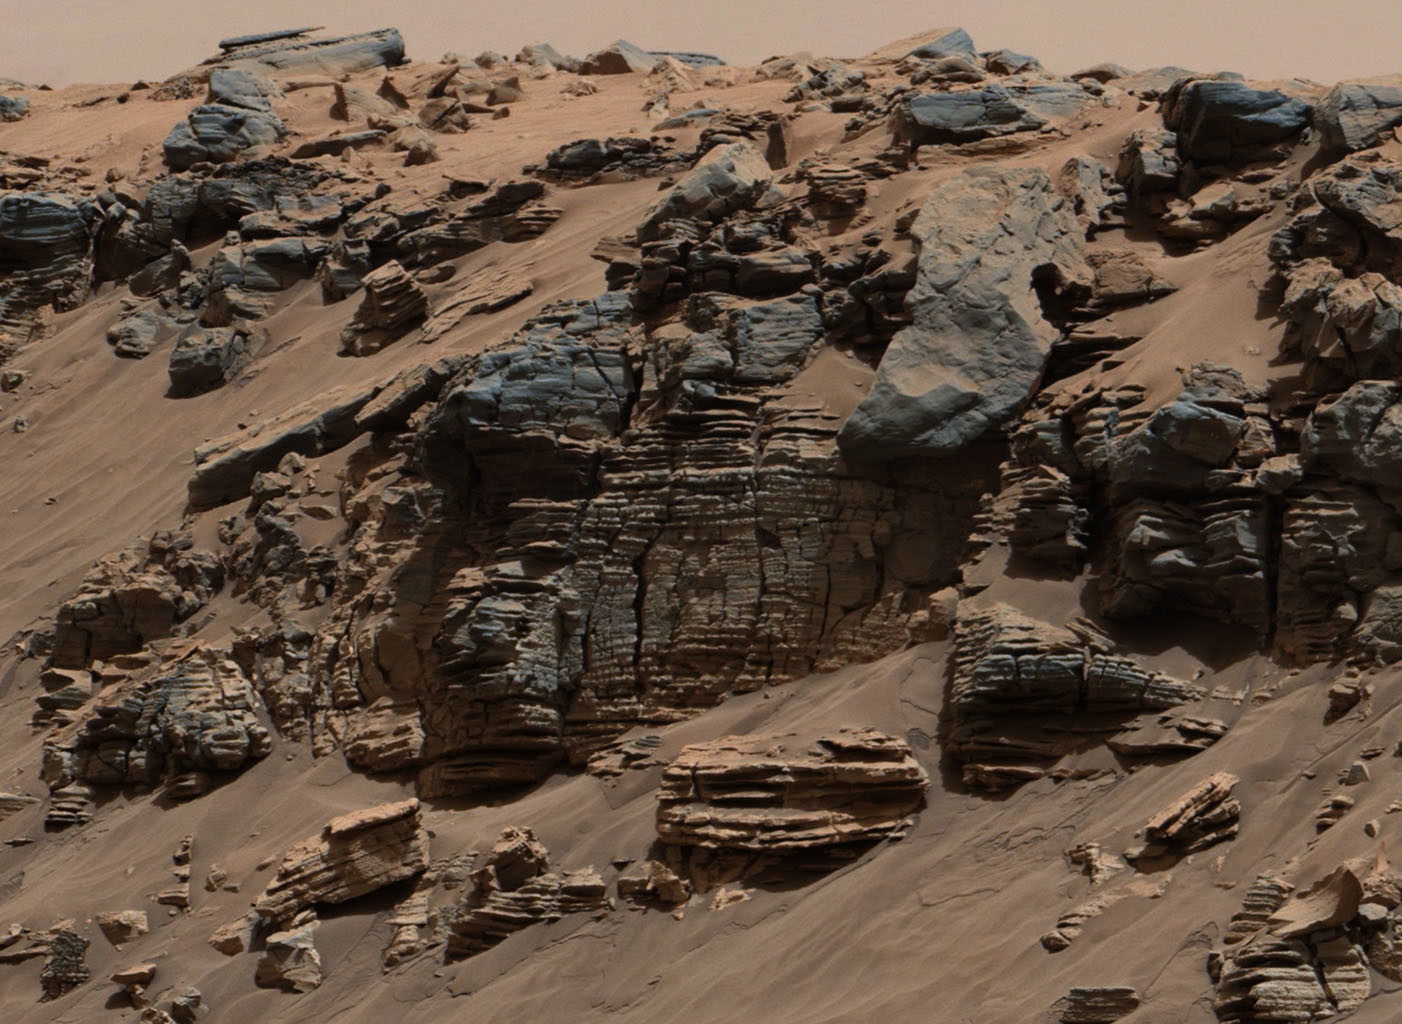 An ancient lake on Mars could have supported a variety of microbial life